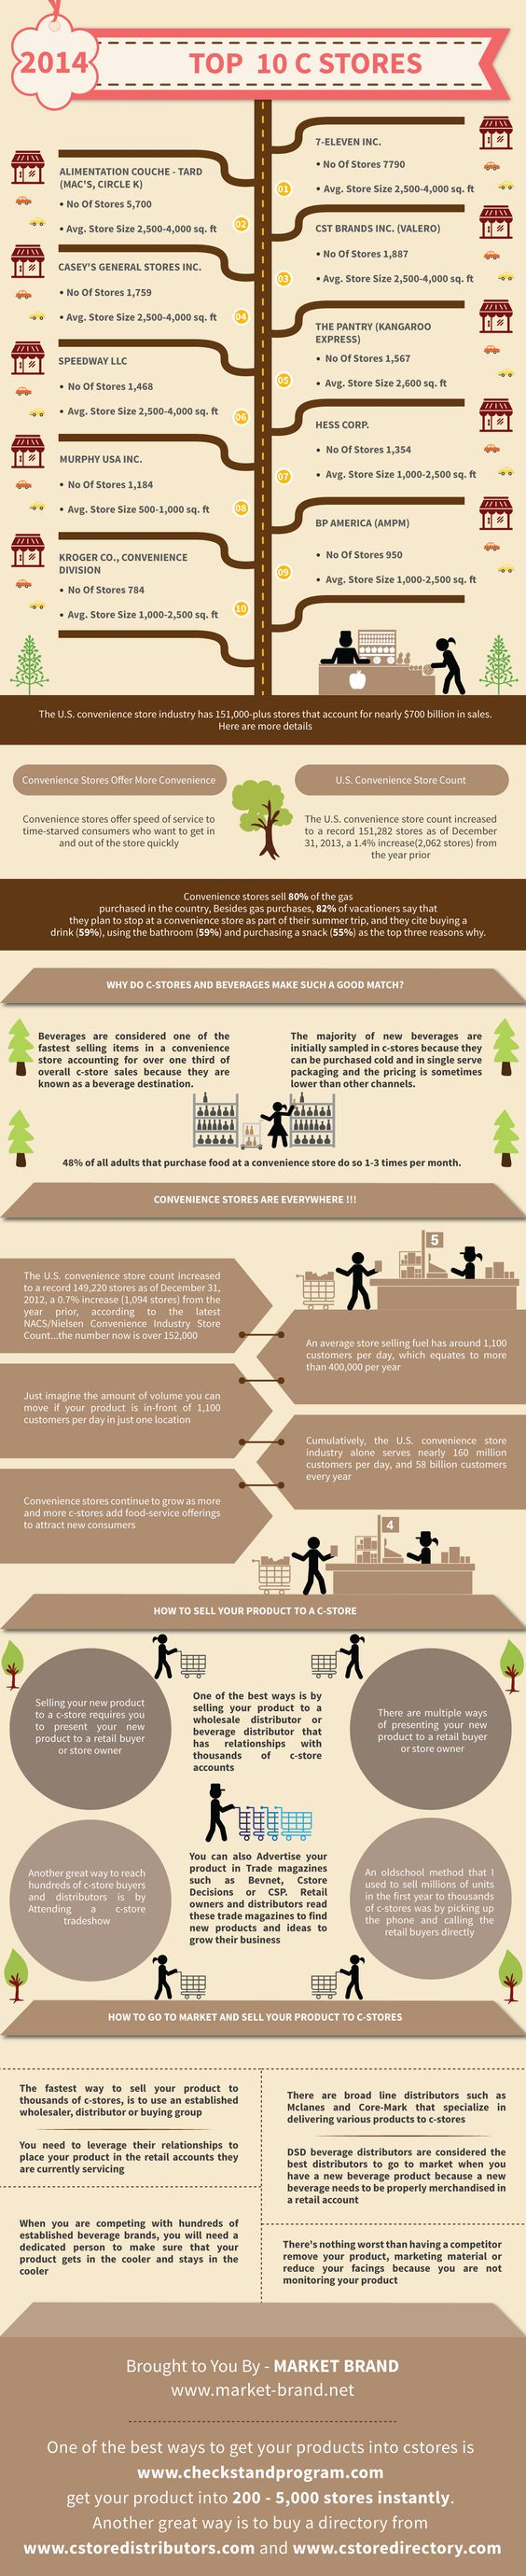 The Top C Store Chains, Distributors, and brokers as well as the process to get your product into them. This infographic shows you exactly what you need to know in a glimpse in order to talk to C Stores and gain distribution.